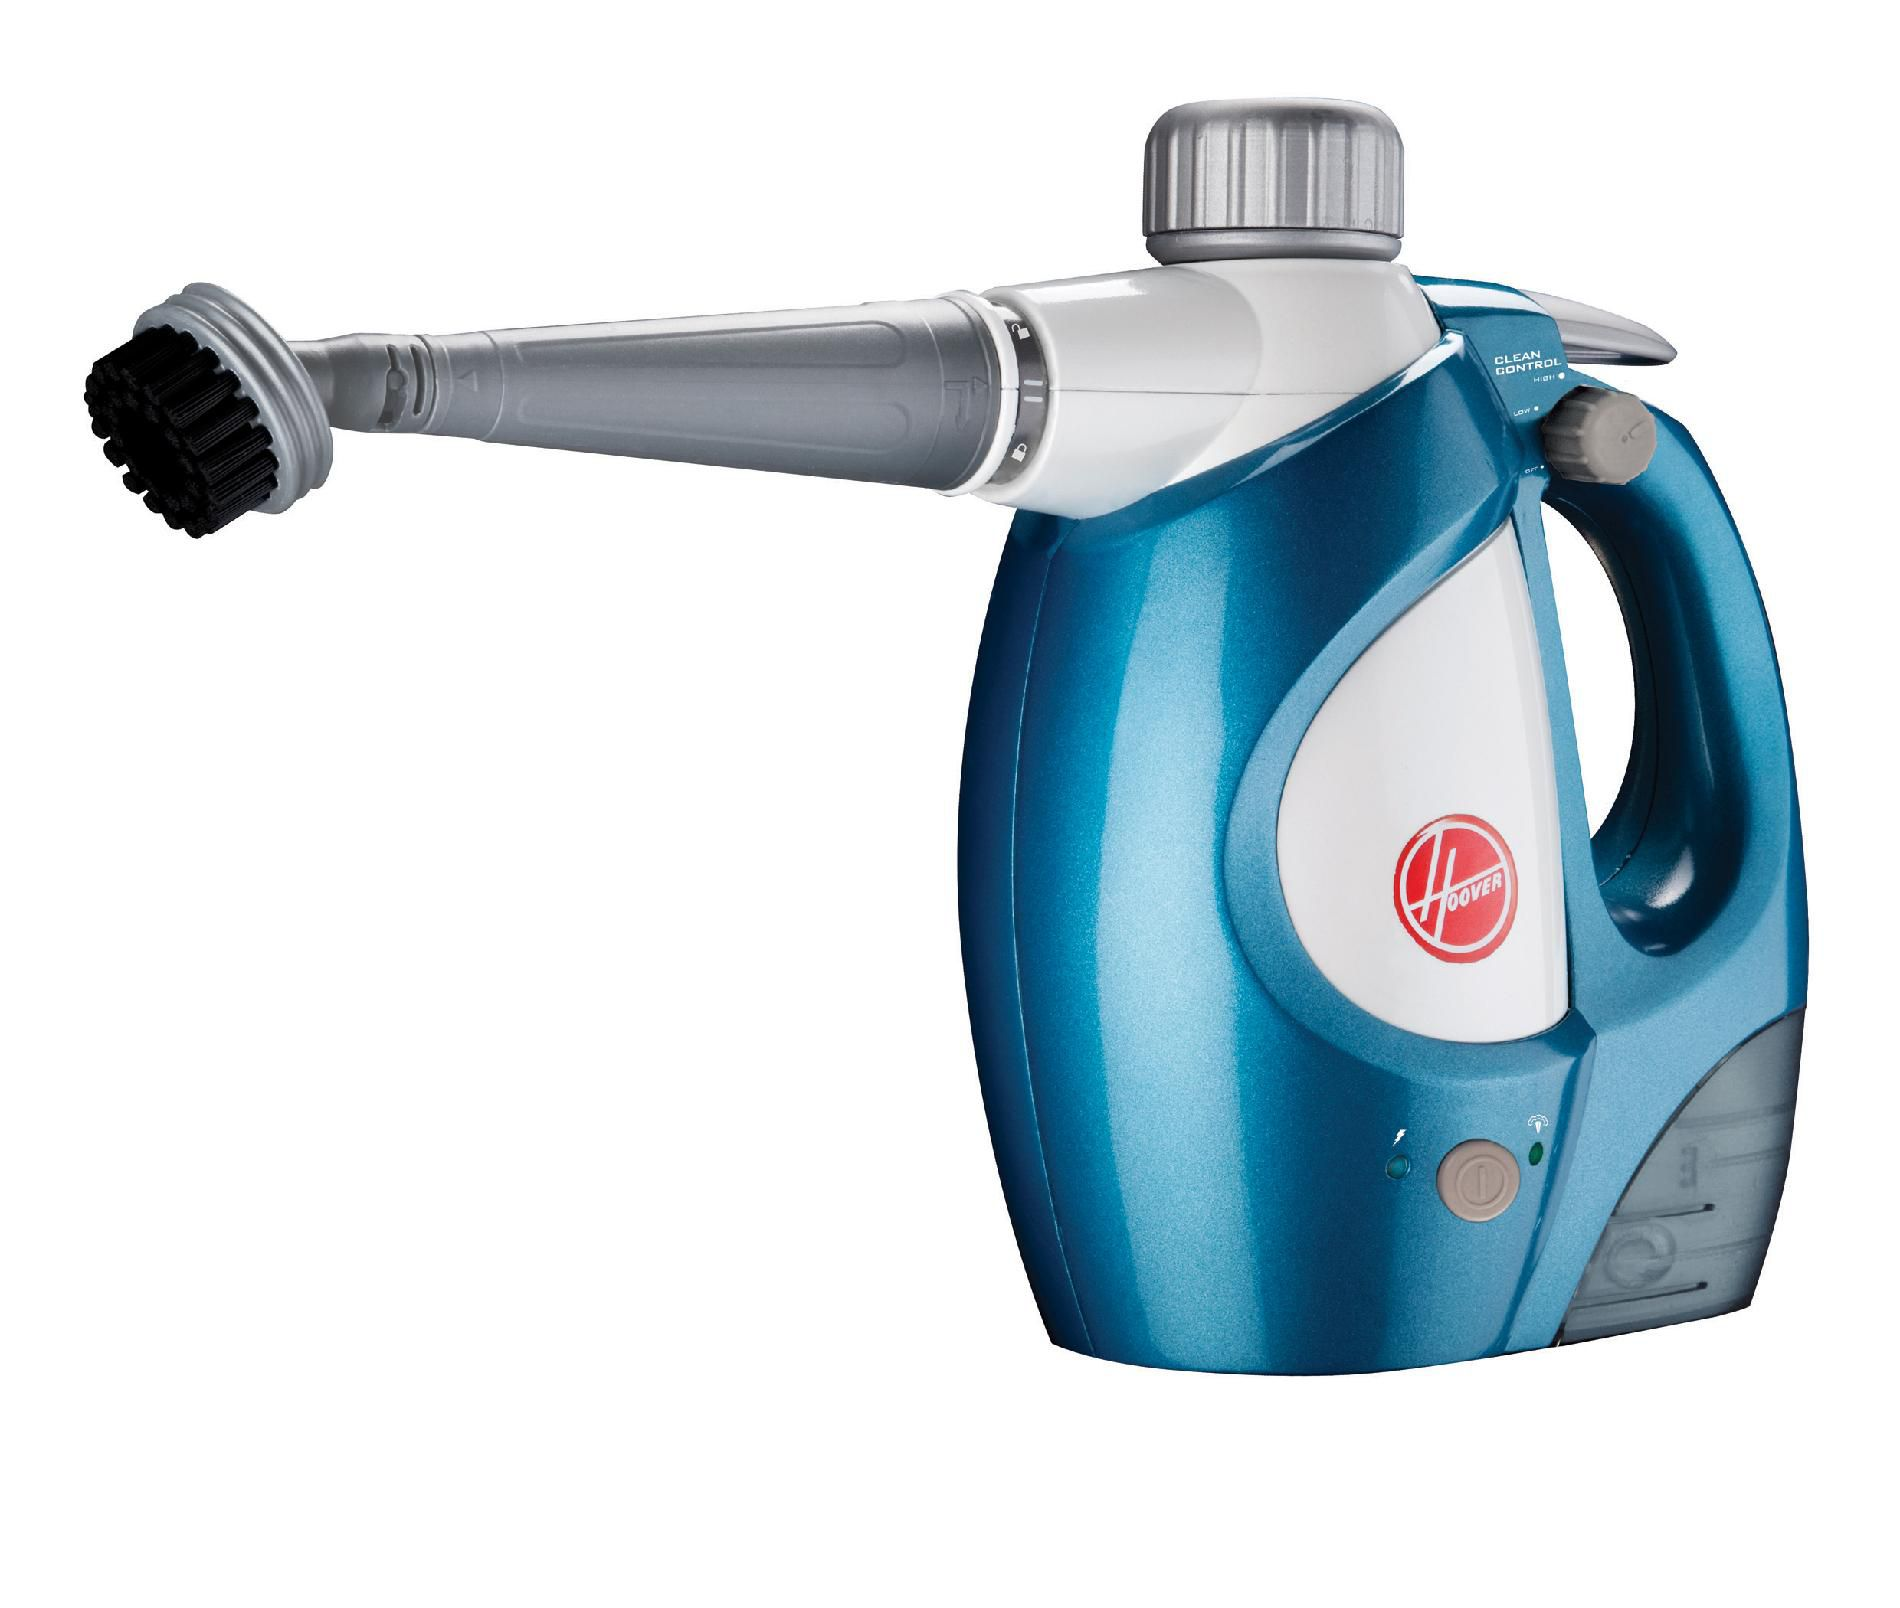 Hoover Enhanced Clean Disinfecting Handheld Steam Cleaner